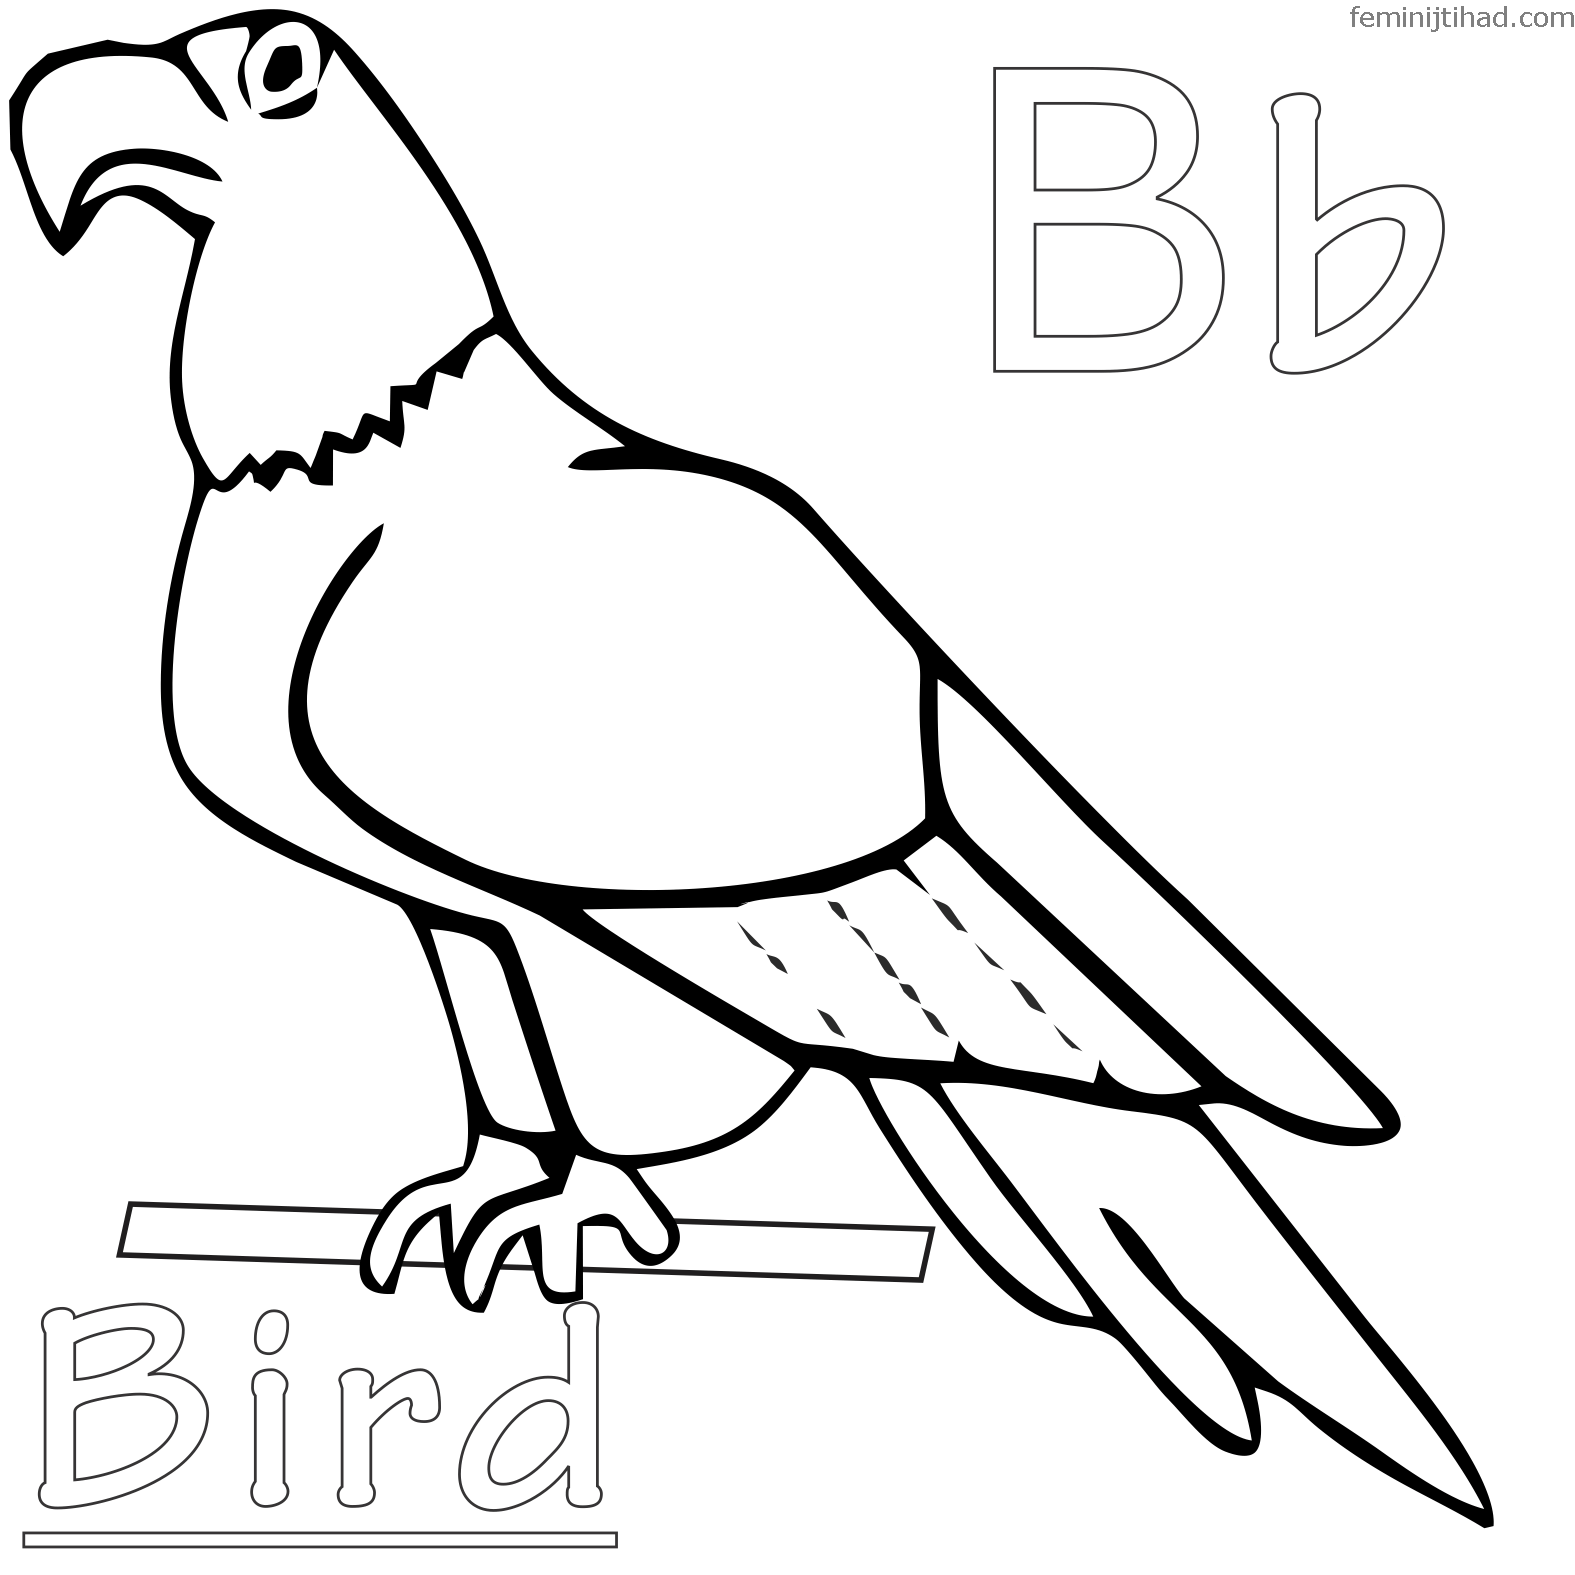 graphic about Free Printable Bird Coloring Pages referred to as Yellow Hen Coloring Web pages at  No cost for